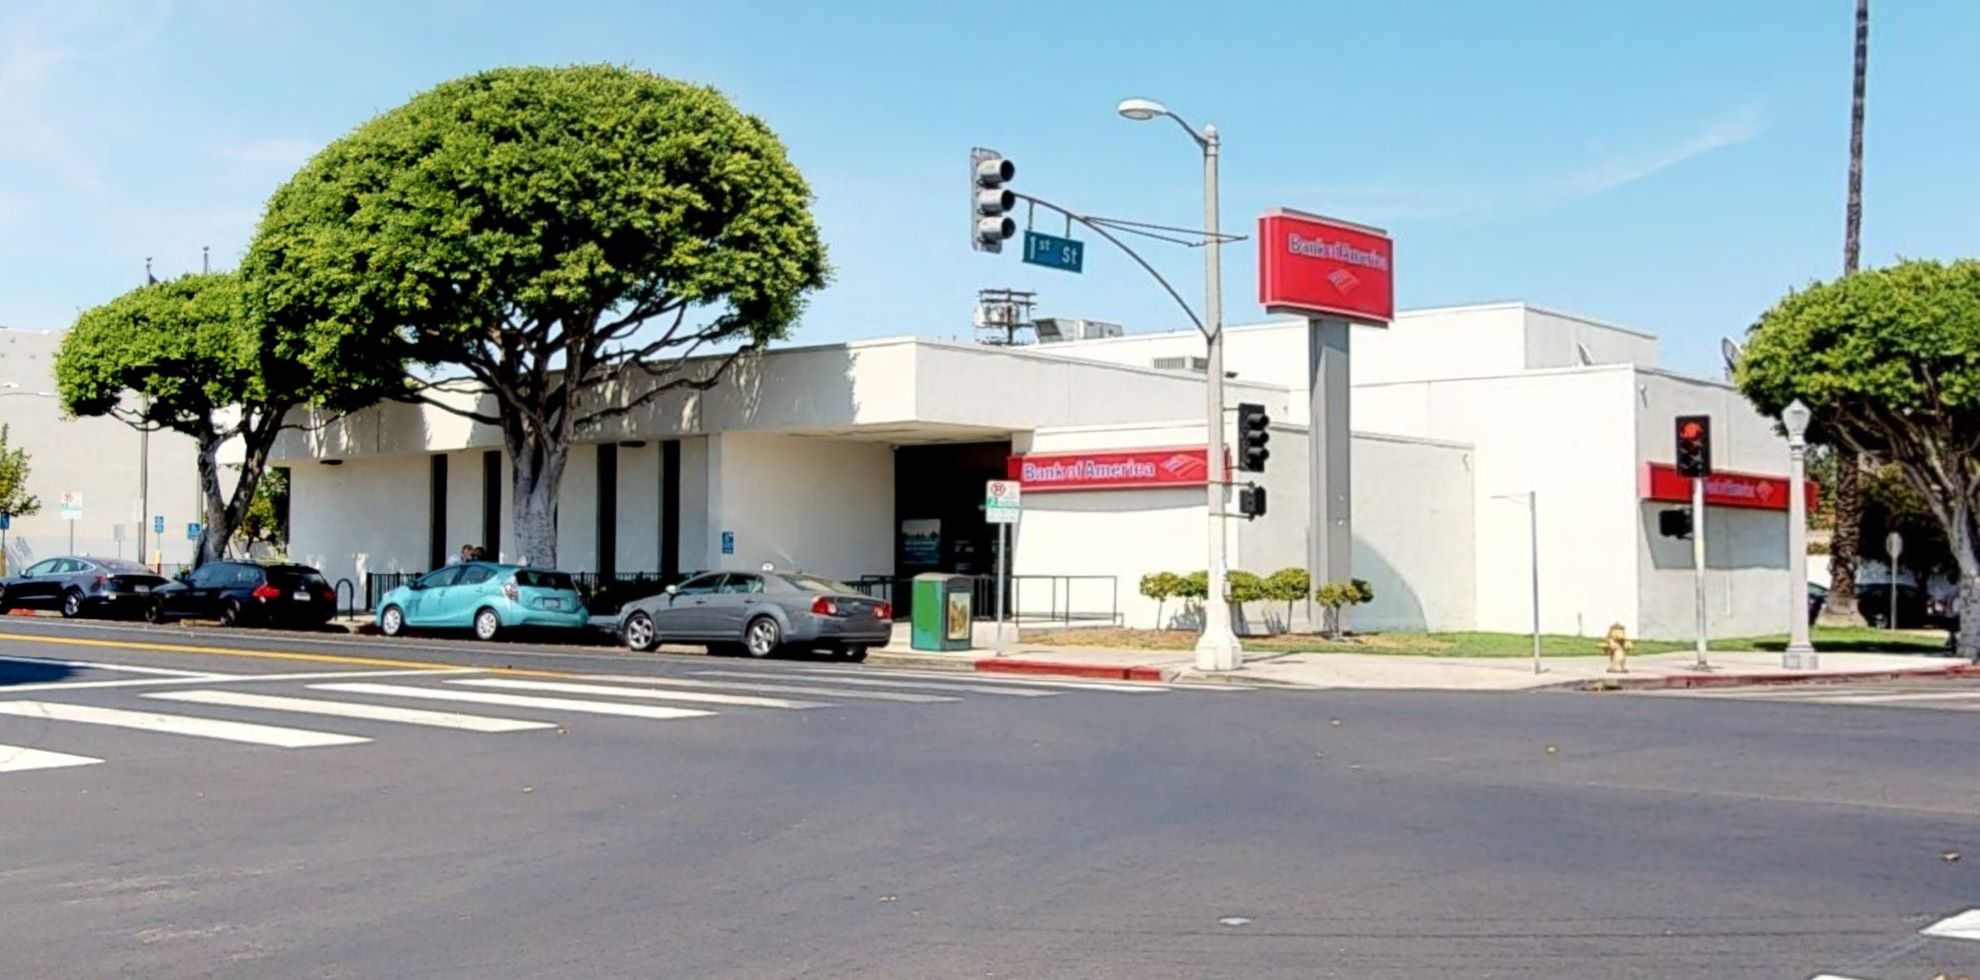 Bank of America financial center with walk-up ATM   100 N Larchmont Blvd, Los Angeles, CA 90004